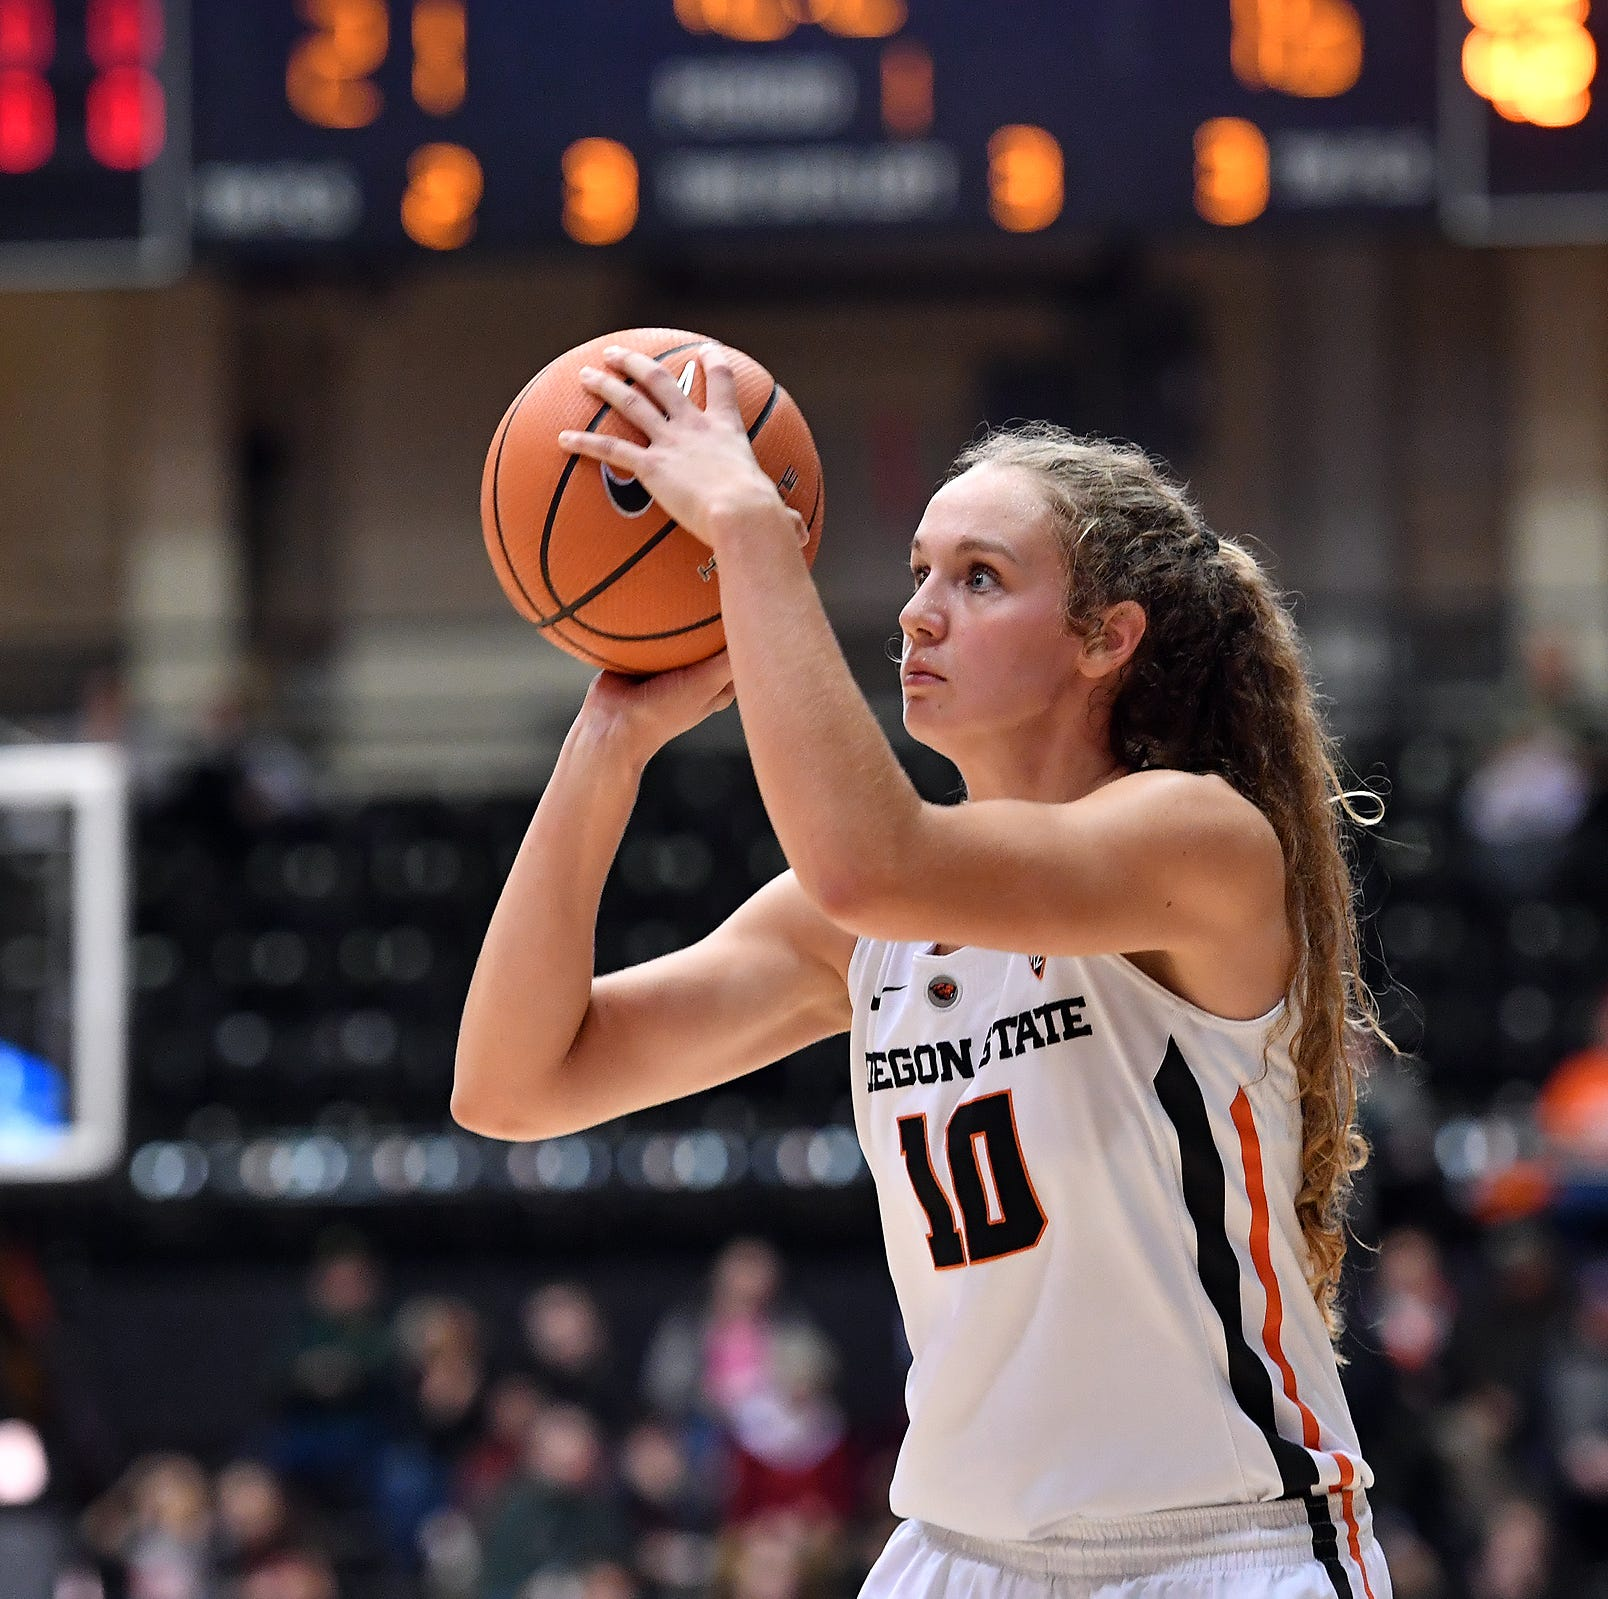 Oregon State Beavers women open NCAA tournament at home against Boise State